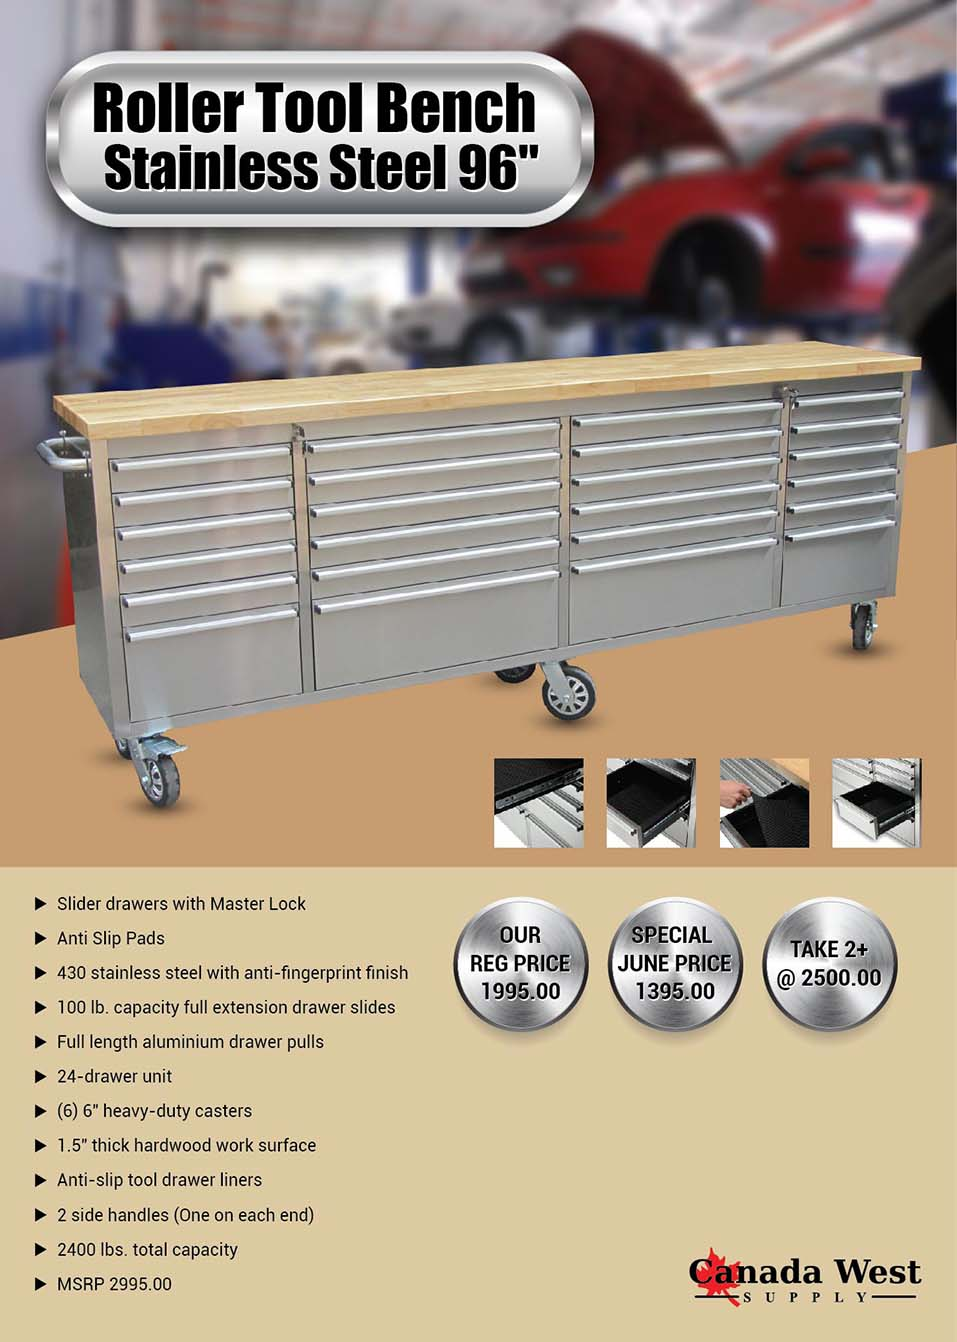 24 Drawer 8 Ft 96 Inch Stainless Tool Bench Htc9624w